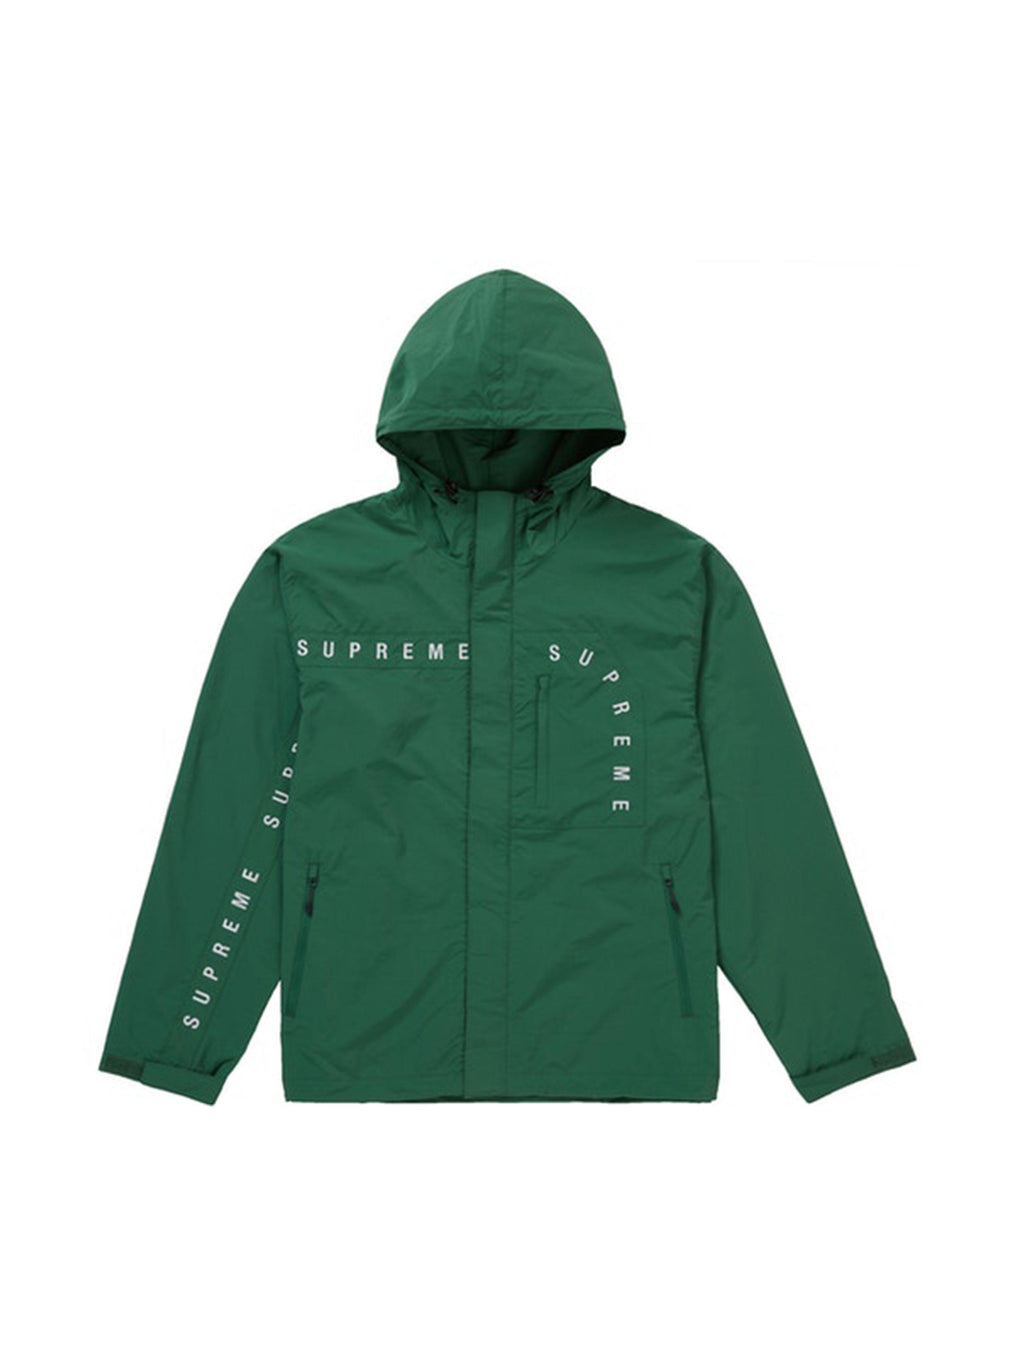 Supreme Curve Logos Ripstop Jacket Olive [FW20] - PRIOR